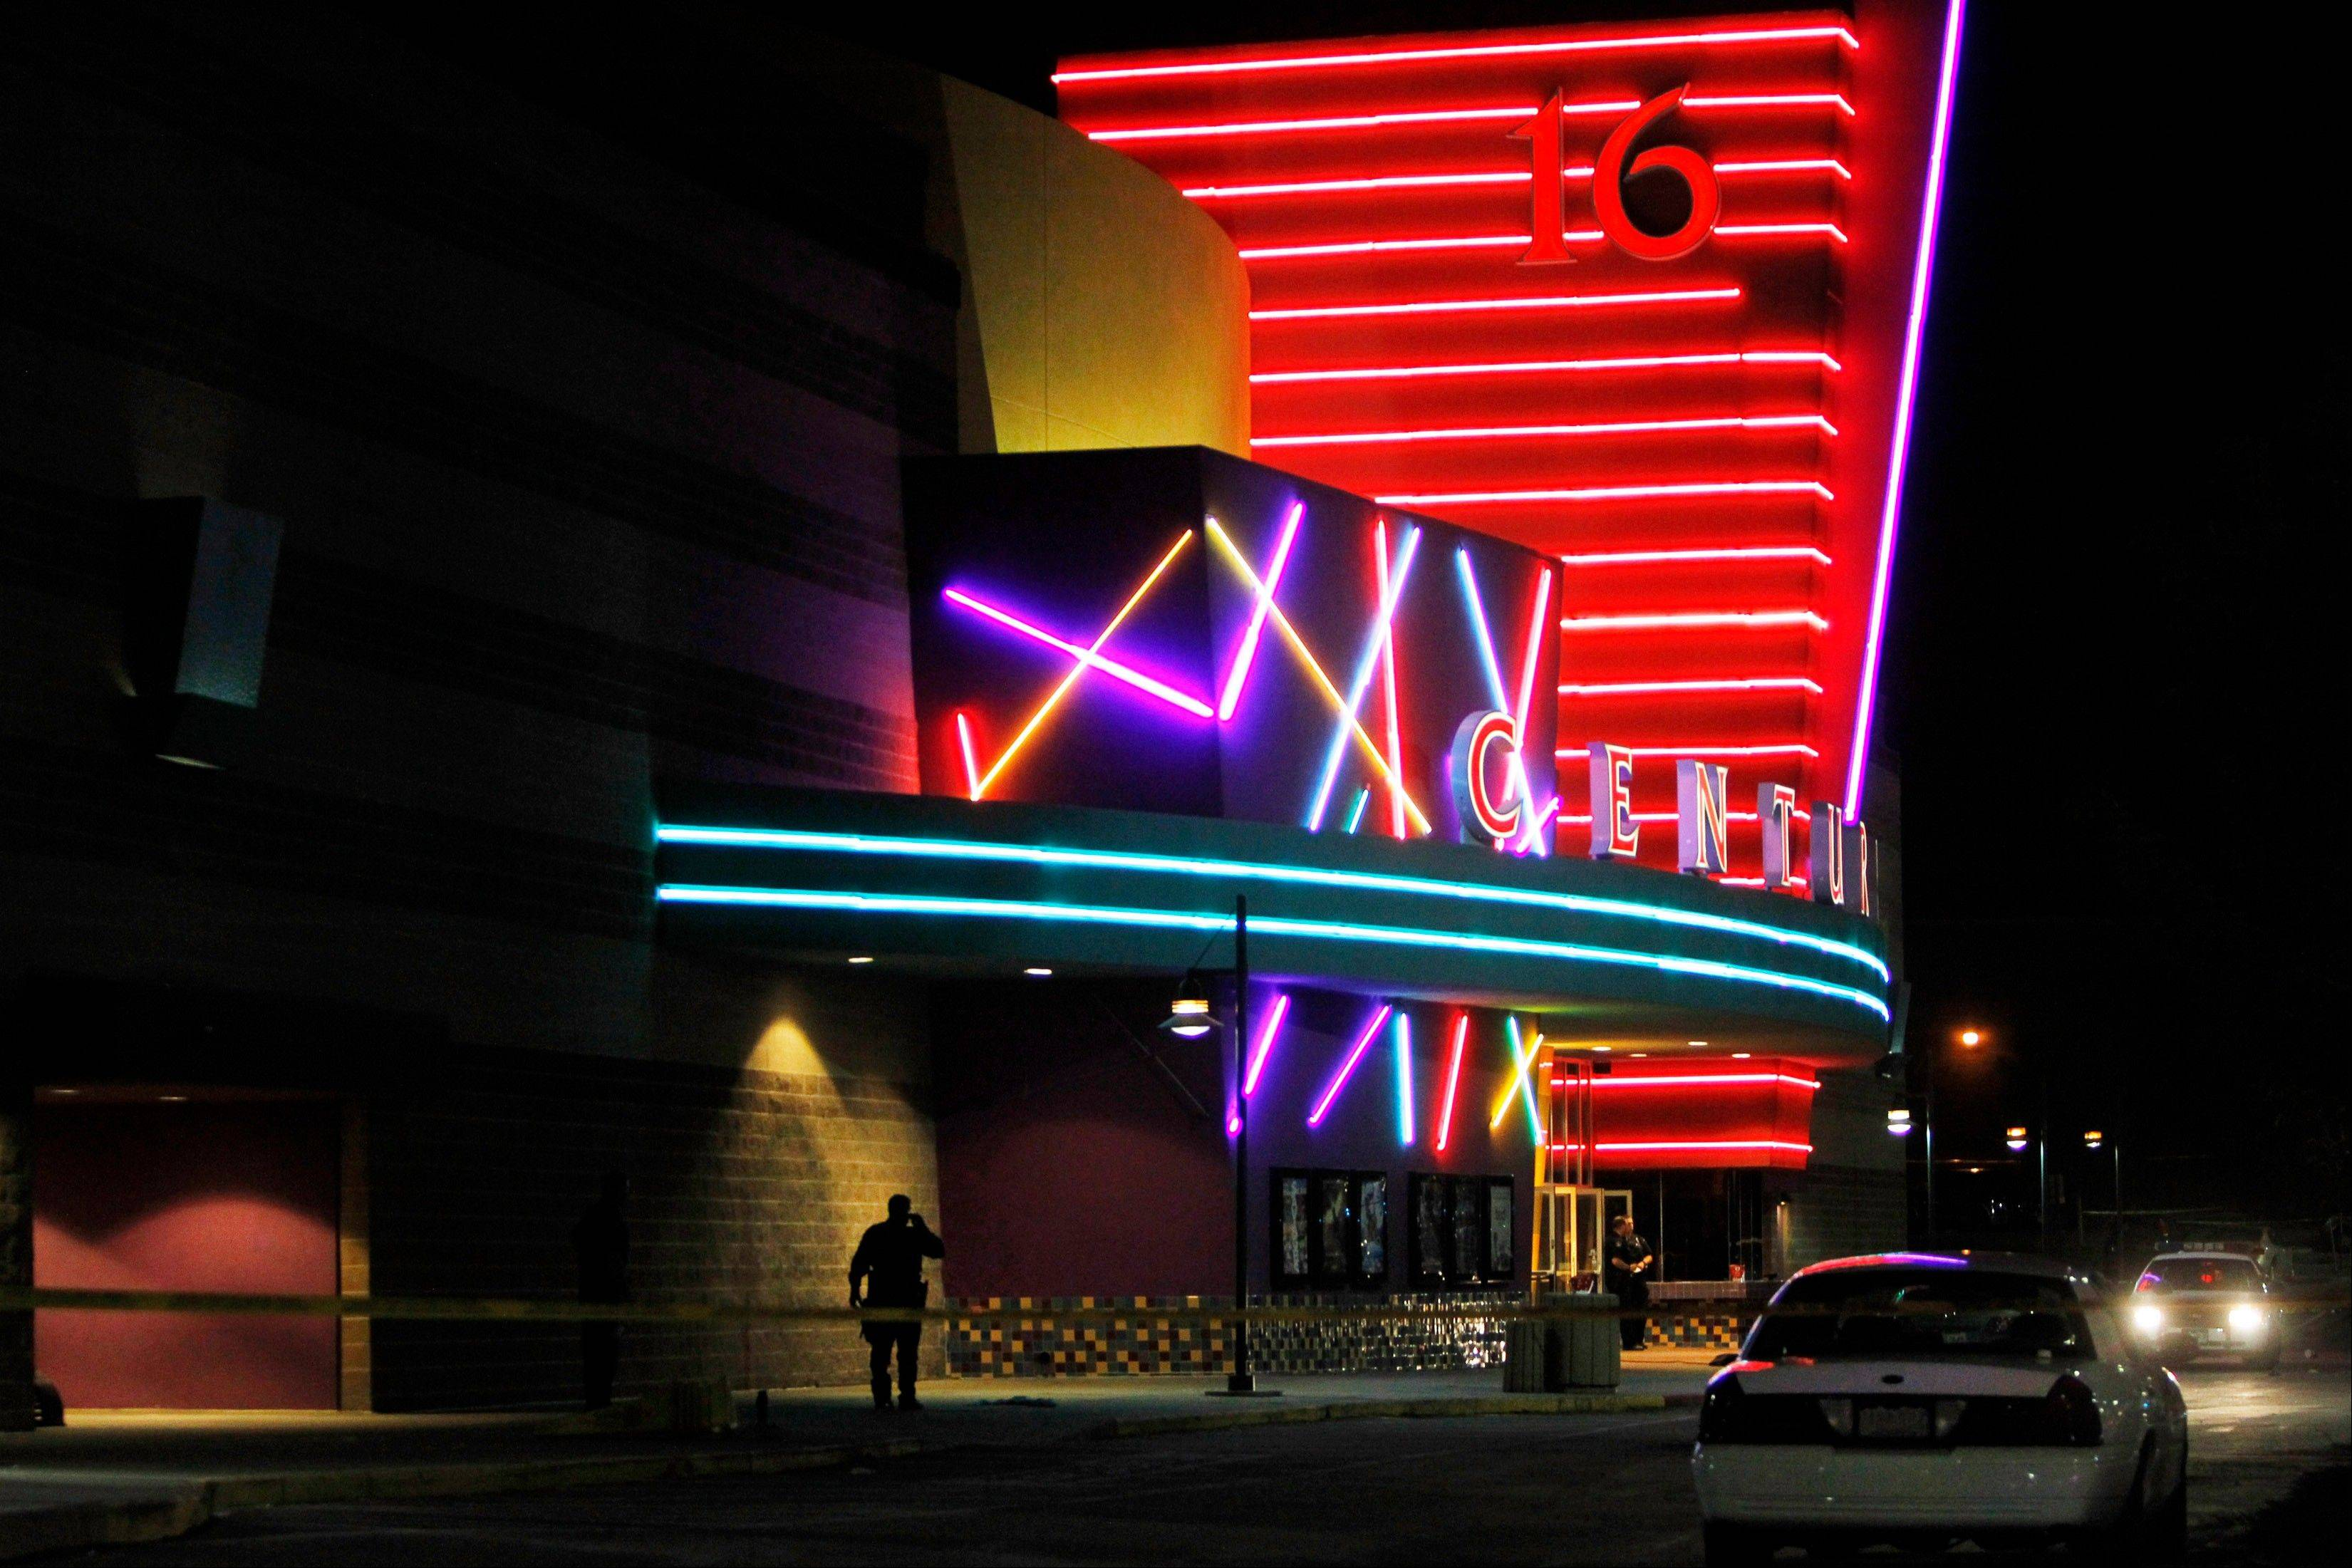 This July 20, 2012 file photo shows police outside of the Century 16 movie theater where suspect James Holmes killed 12 people and wounded 70 during the screening of a Batman movie. Eight months later, Colorado became the only state outside the Democratic Party�s coastal bases to pass sweeping gun control laws.